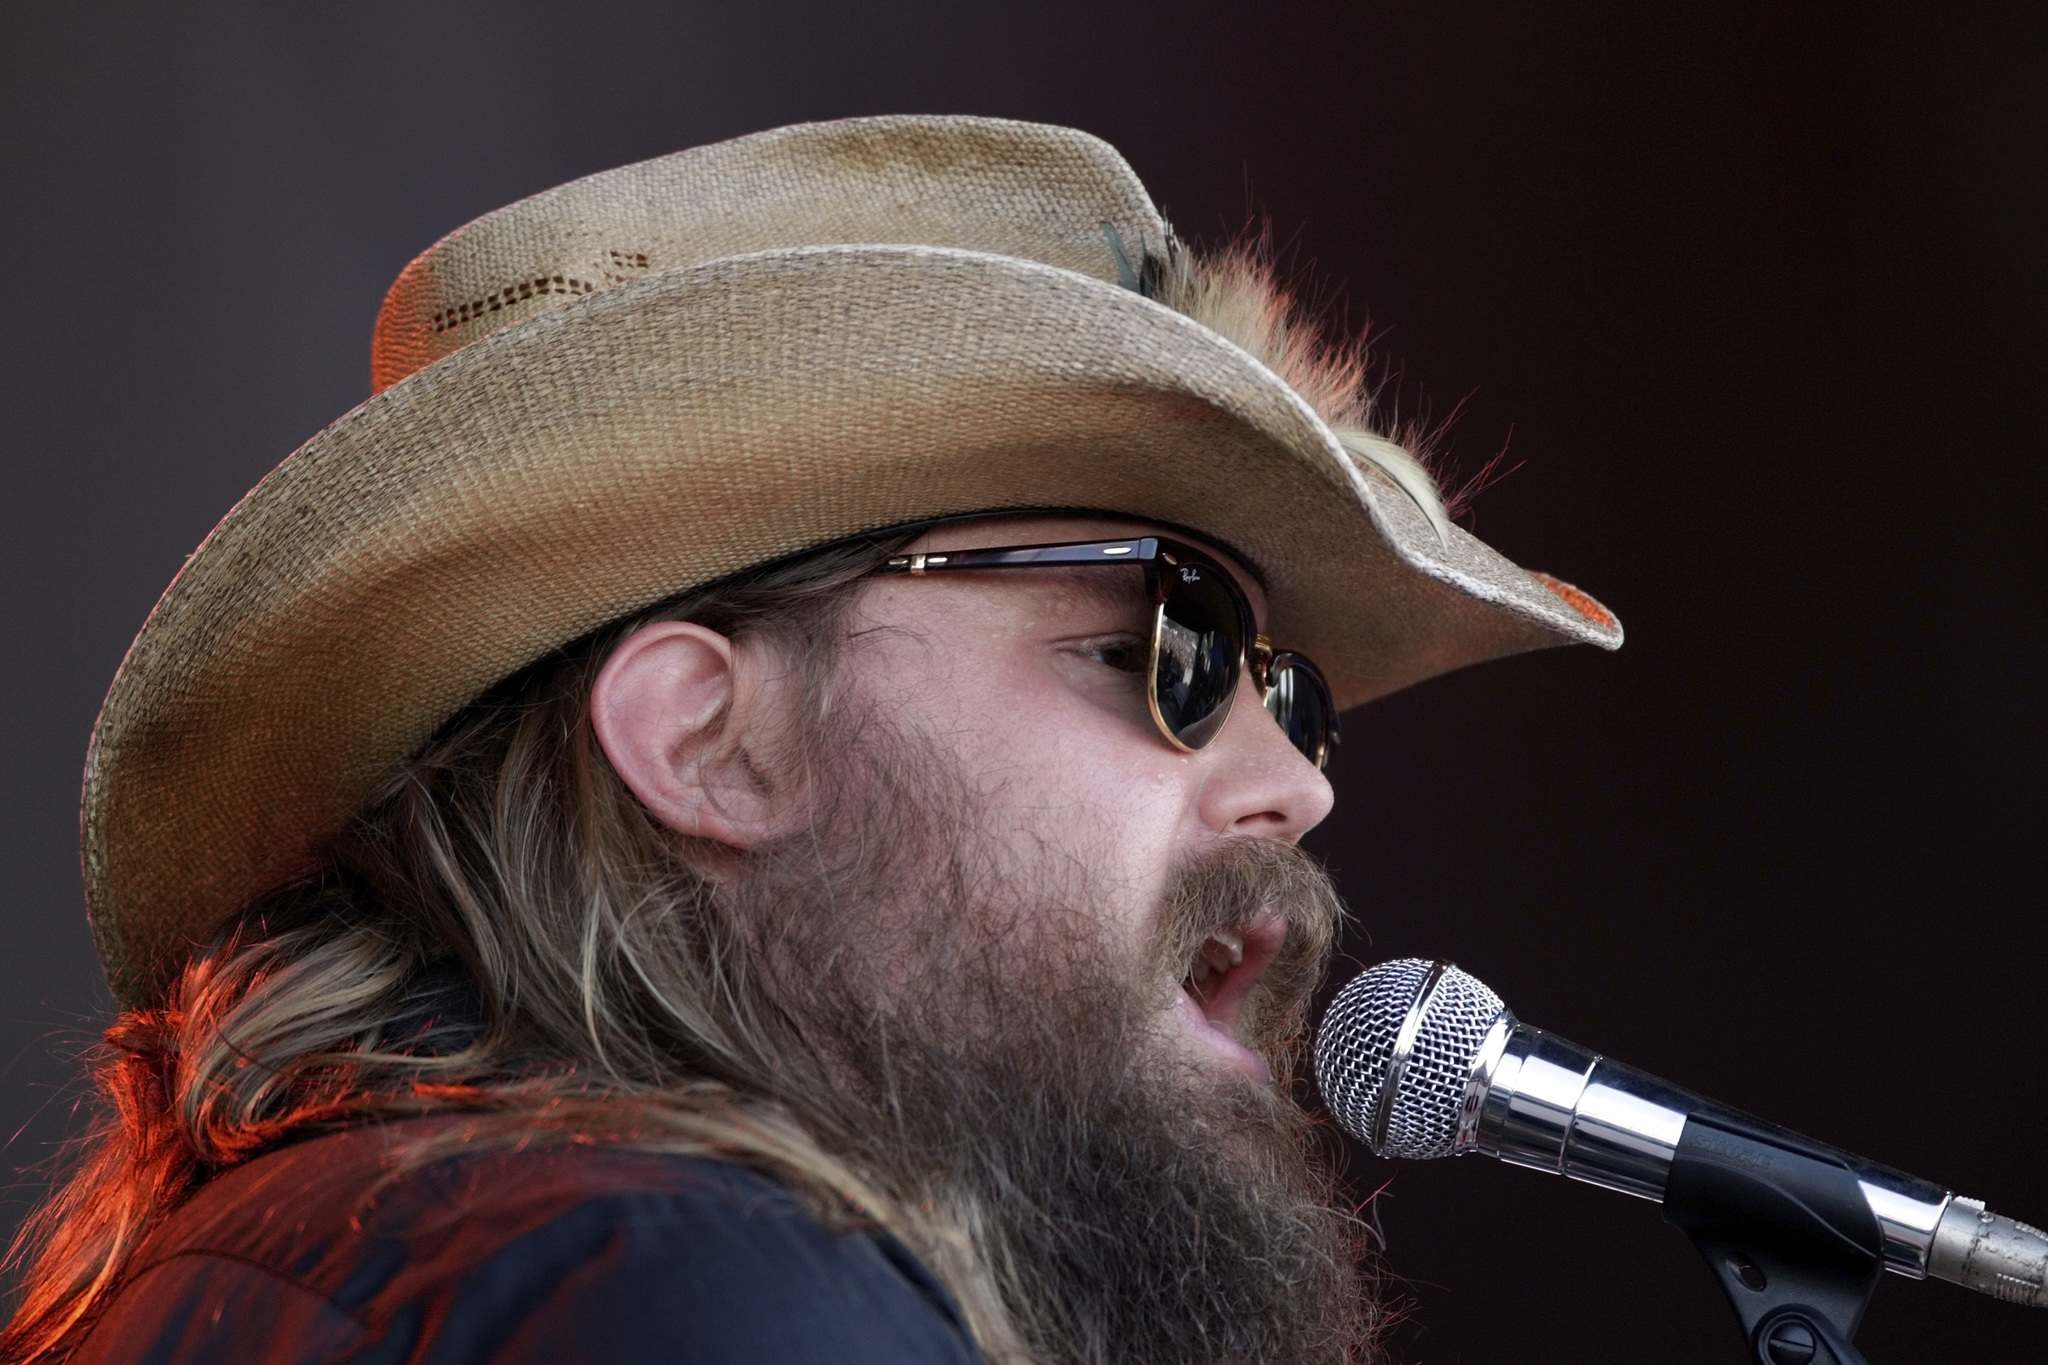 INVISION FILES</p><p>Chris Stapleton at the Bonnaroo Music and Arts Festival in Manchester, Tenn. in June.</p>